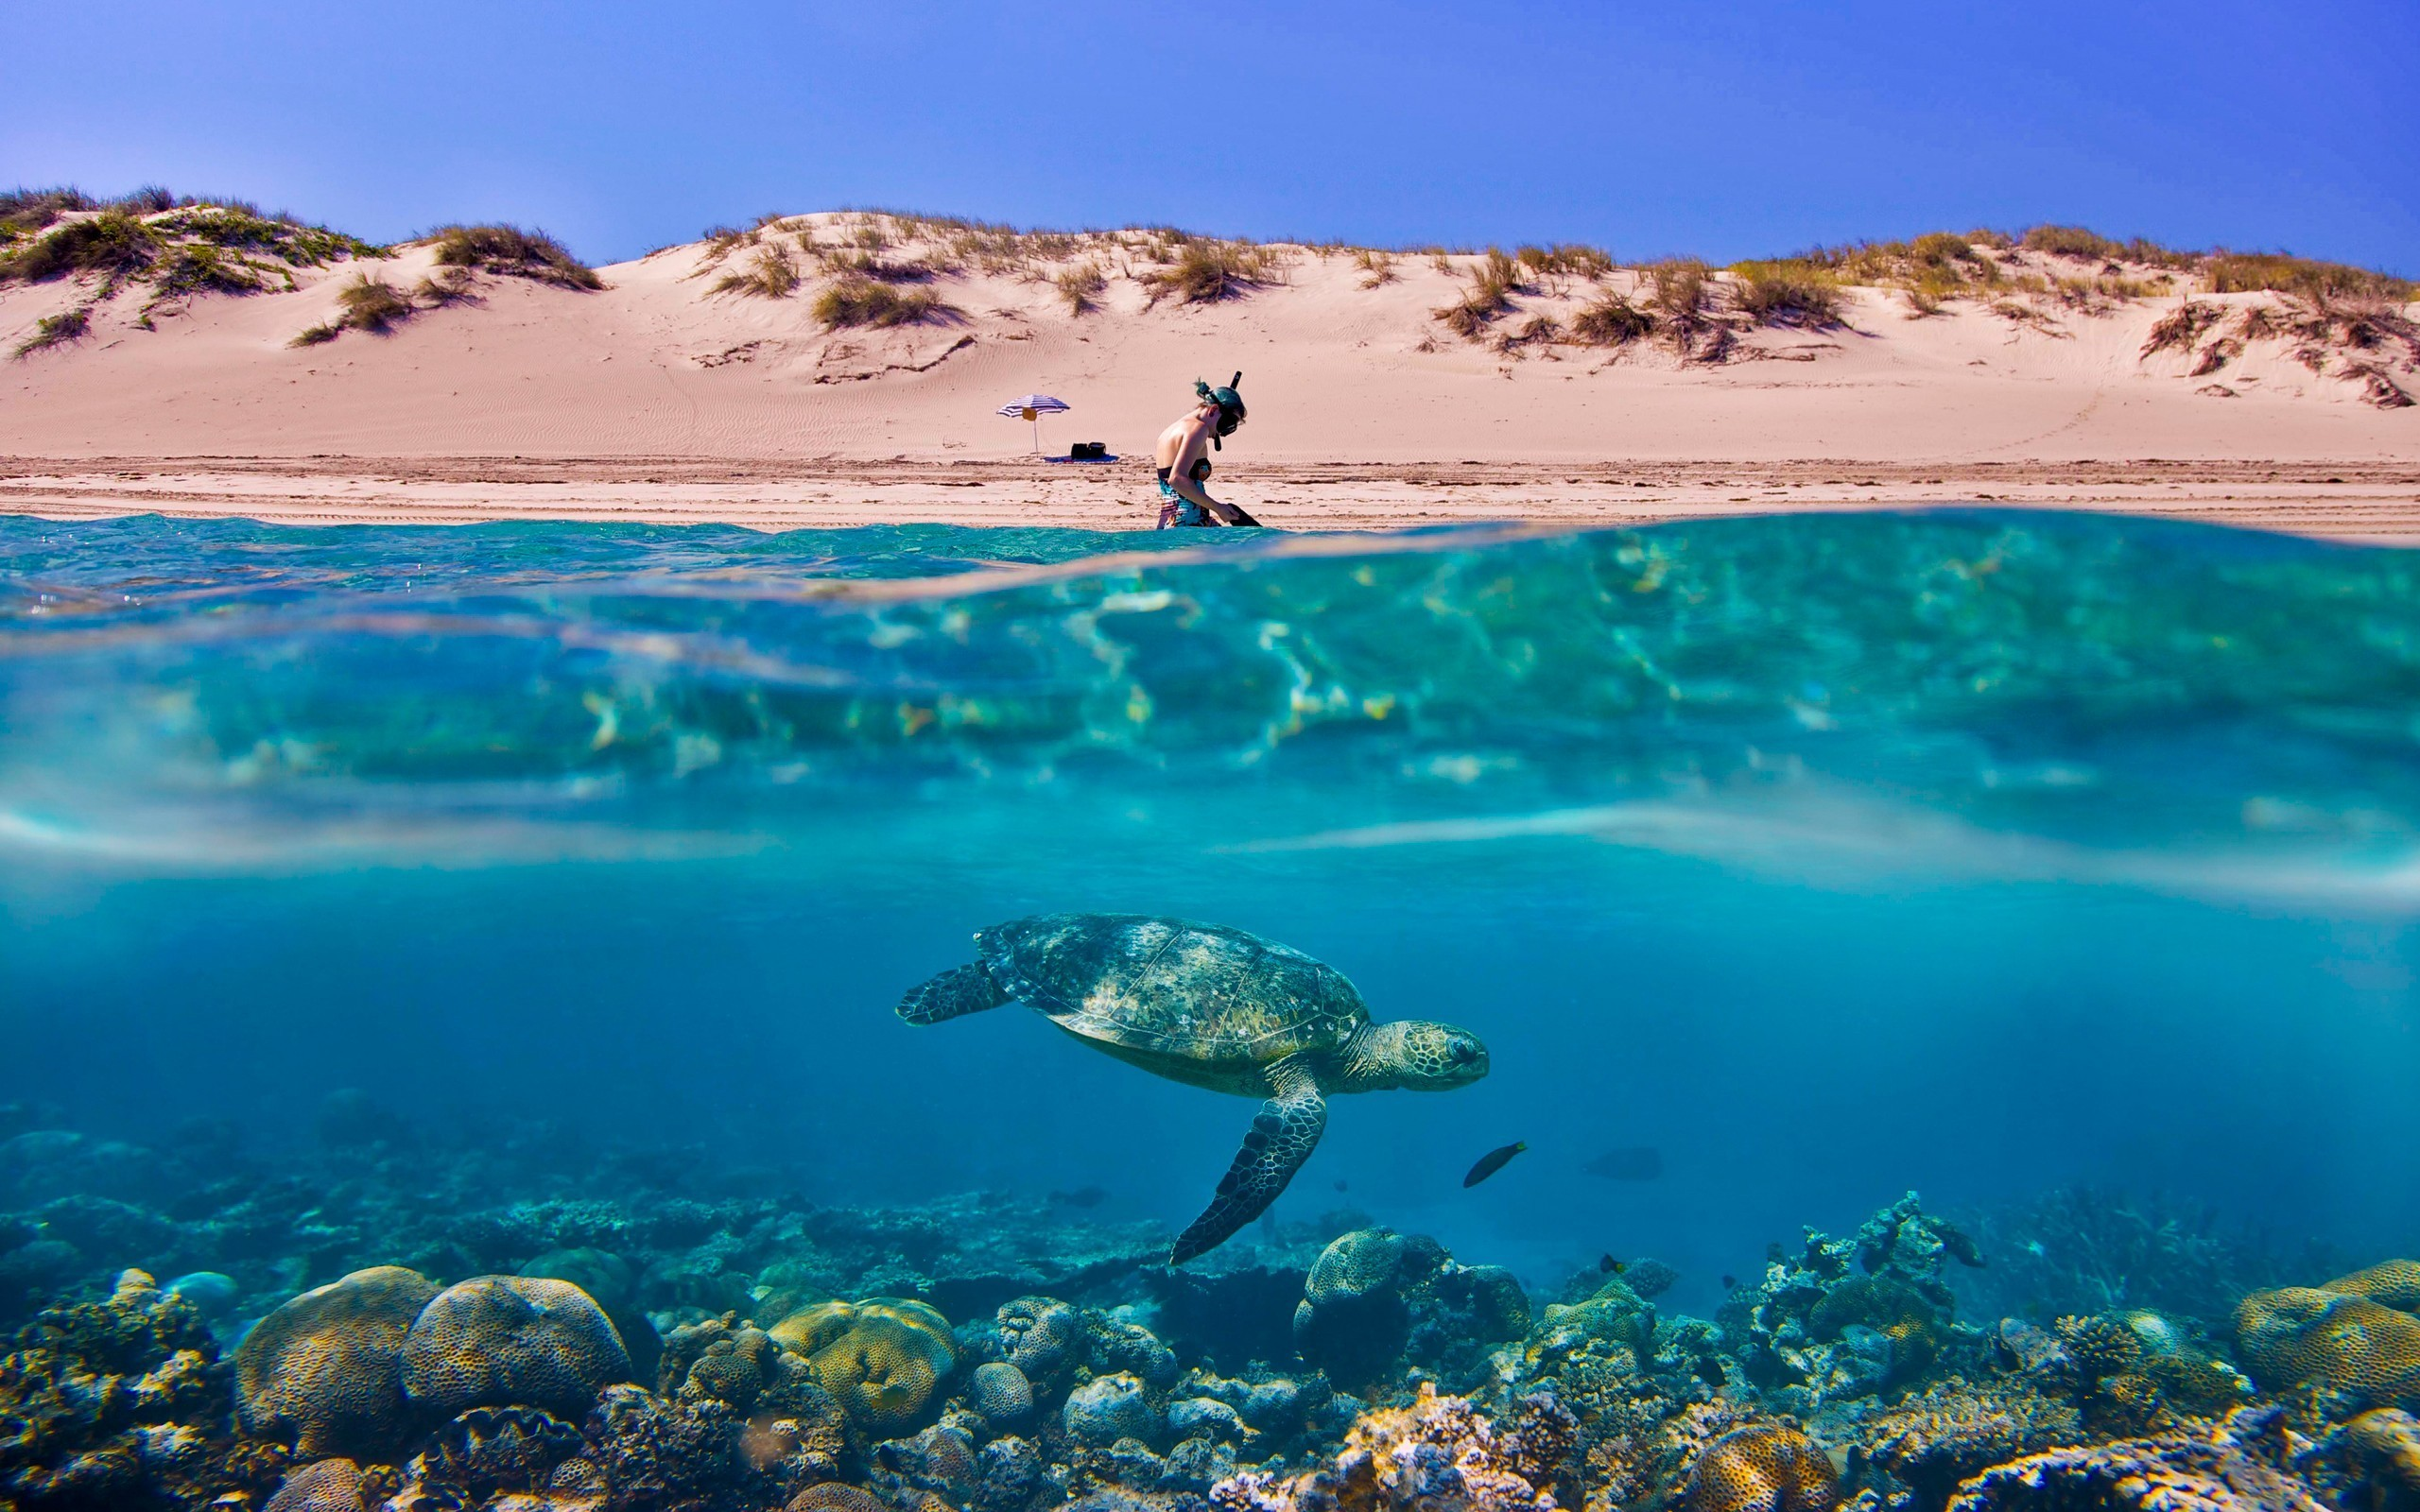 2560x1600 Australia sand dunes umbrellas scuba diving split-view wallpaper